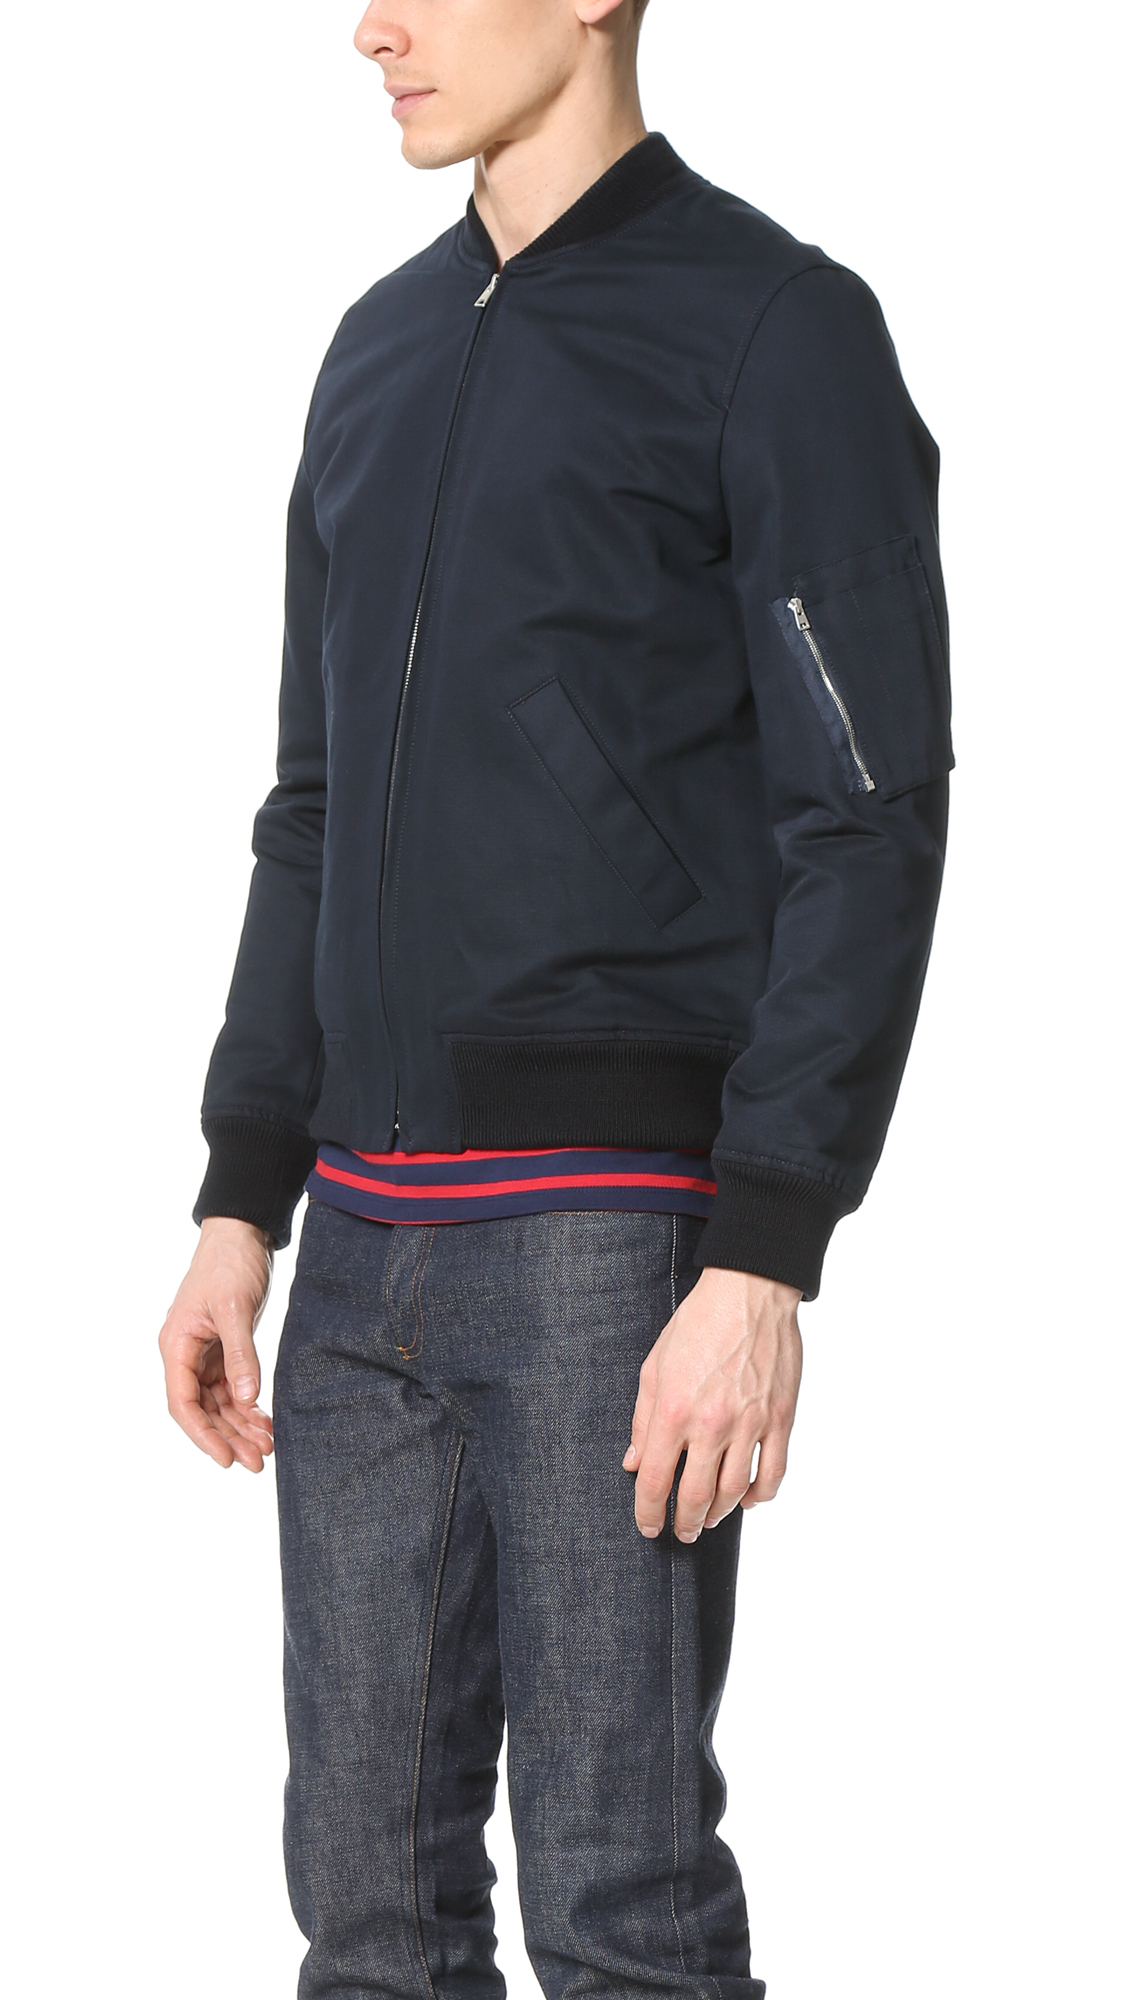 A.P.C. Cotton Ma-1 Bomber Jacket in Dark Navy (Blue) for Men